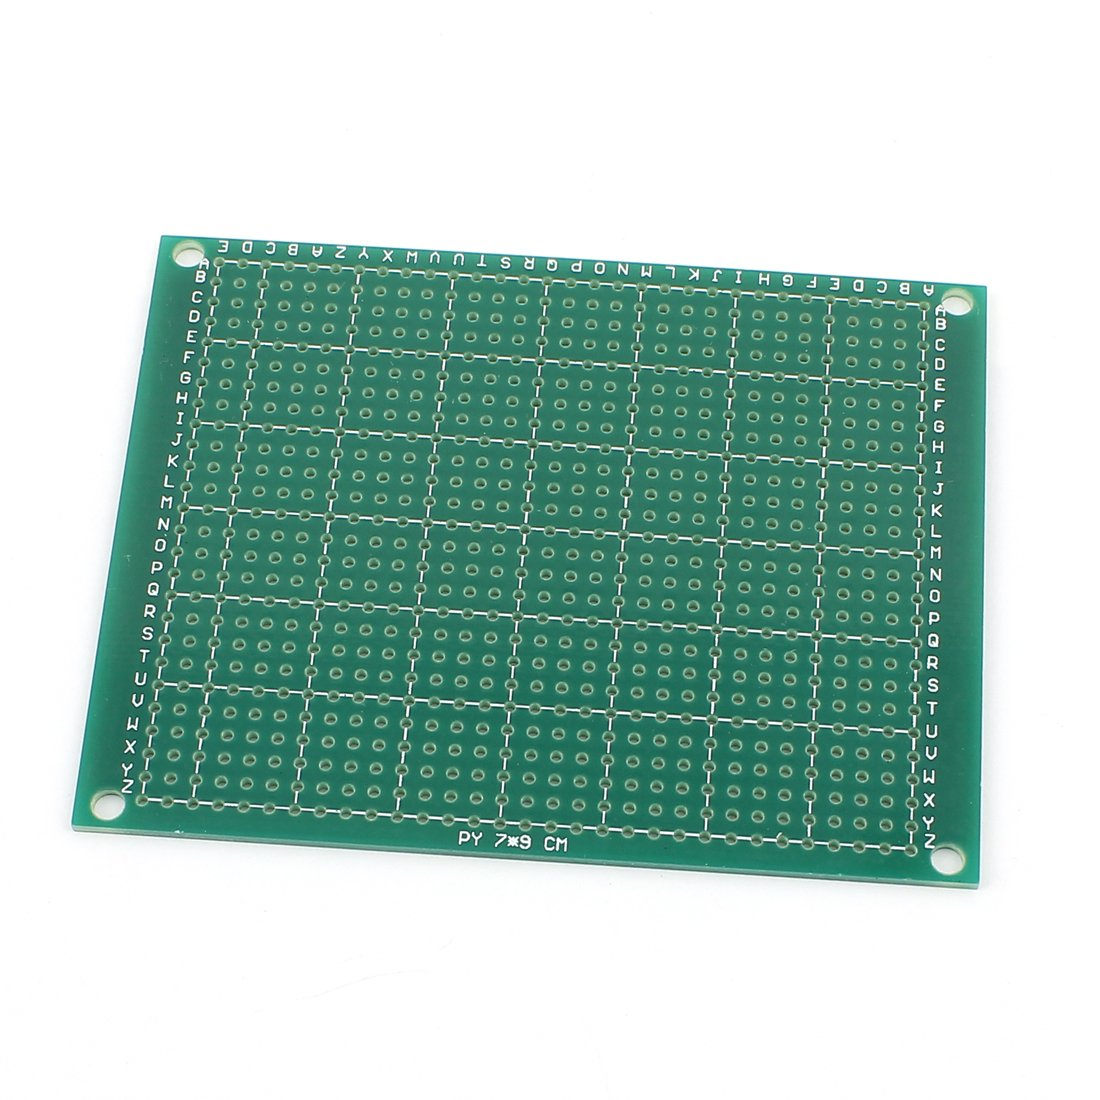 Uxcell a15082500ux0218 5 Piece 7 cm x 9 cm DIY Prototype Paper Single Side PCB Universal Board 2.76 Width 3.54 Length 2.76 Width 3.54 Length